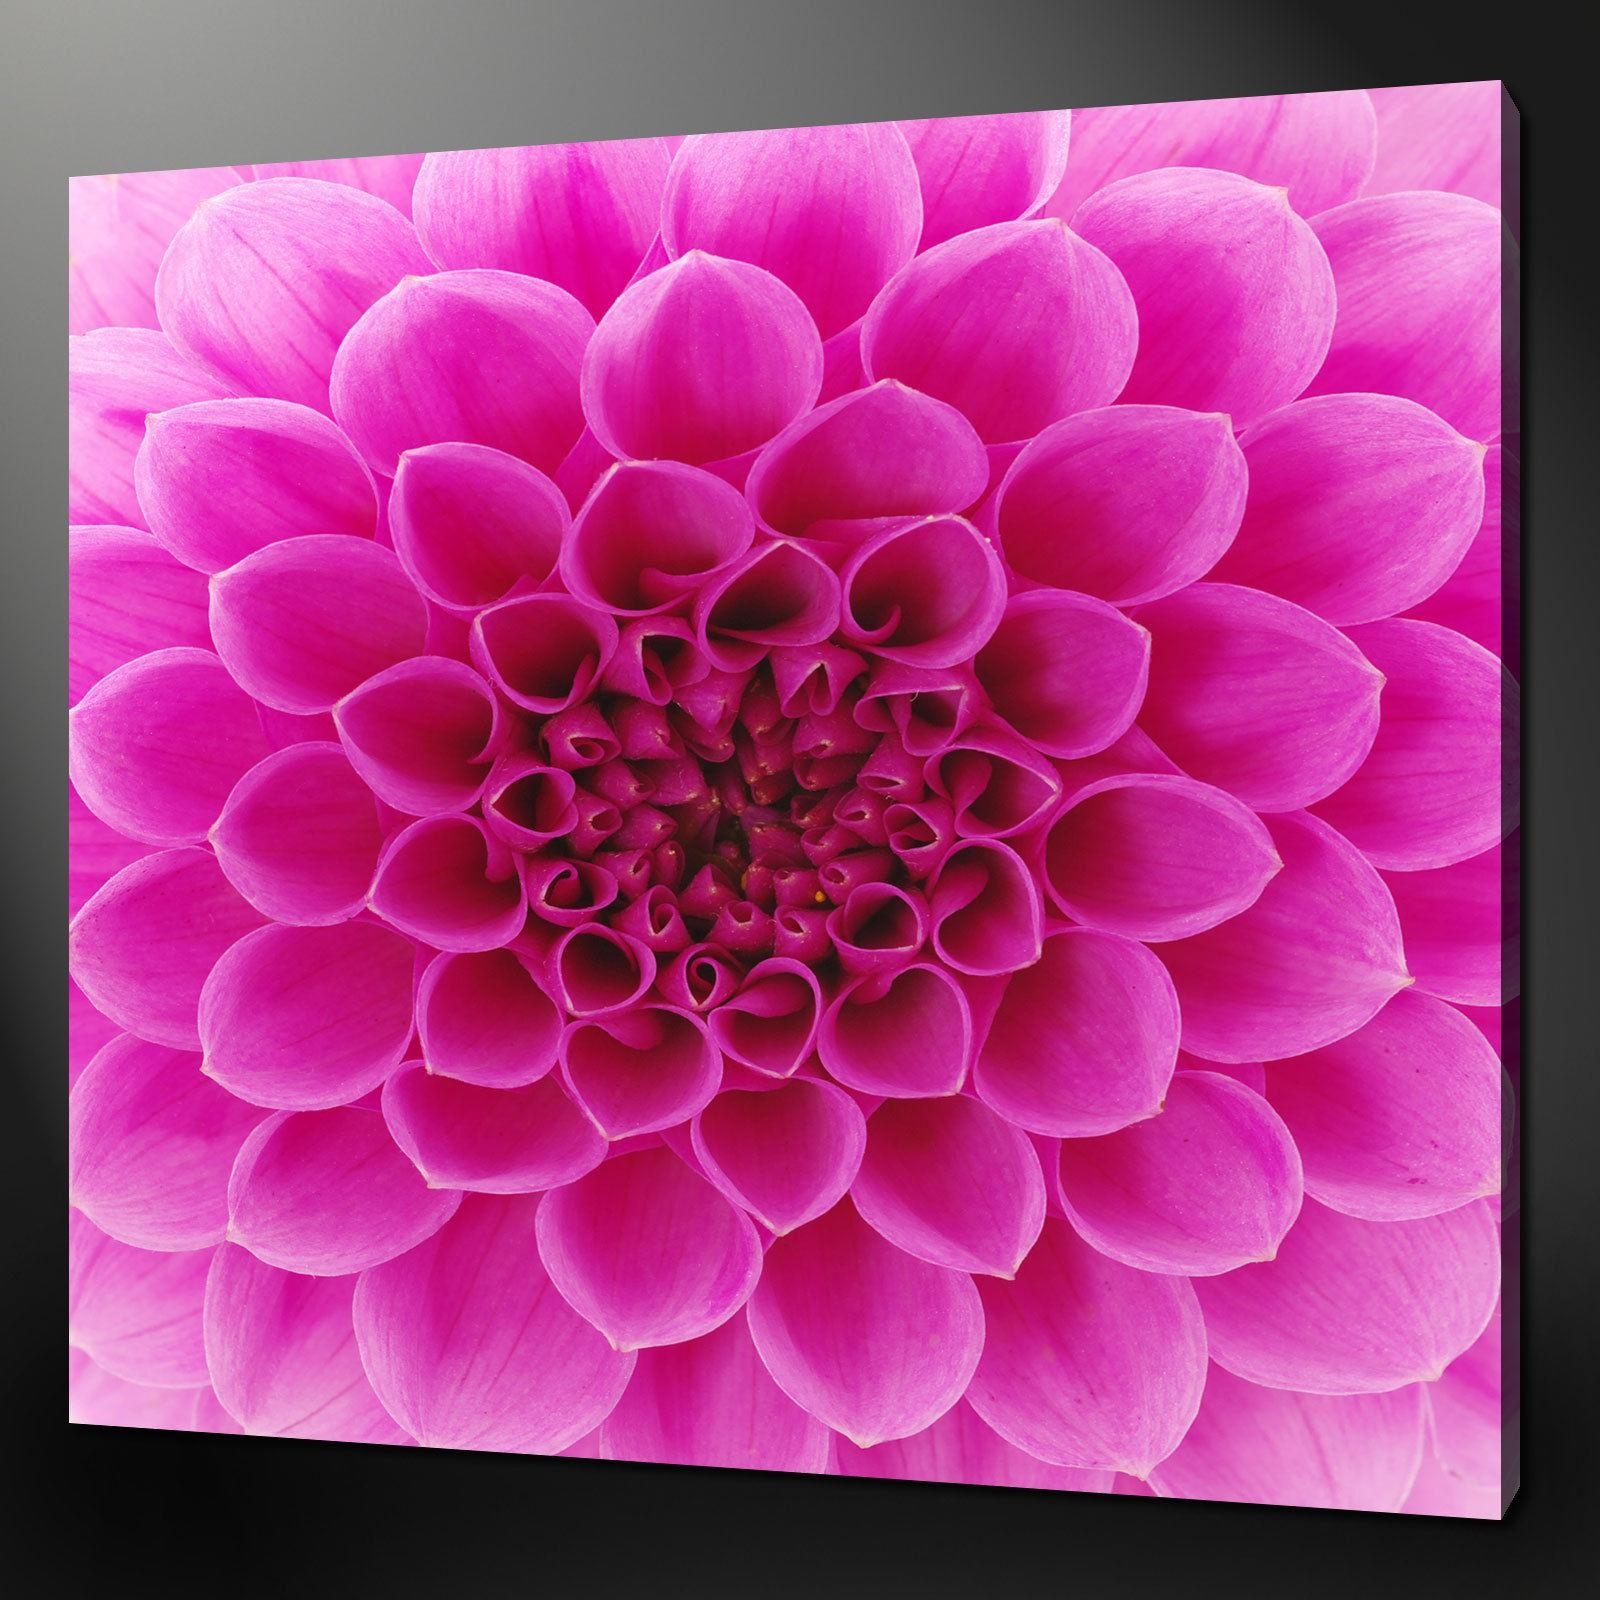 "Abstract Pink Dahlia Flower Modern Wall Art Canvas Print 12""x12 Intended For Pink Flower Wall Art (Image 2 of 20)"